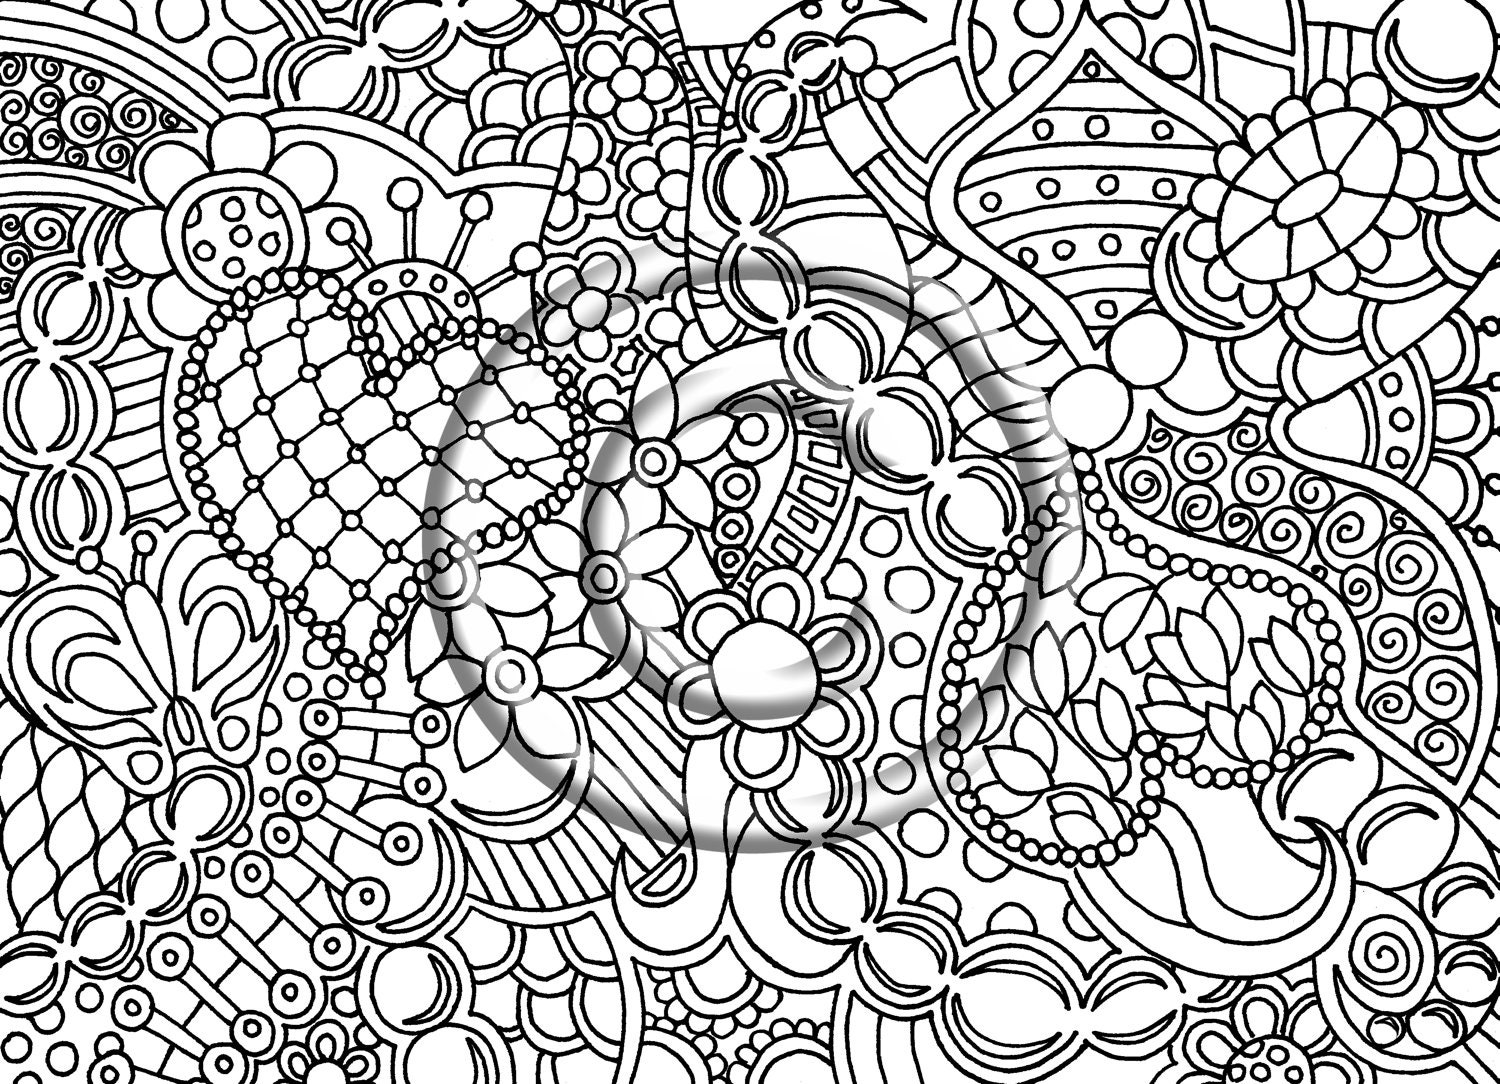 Trippy Coloring Pages http://printablecolouringpages.co.uk/?s=trippy ...